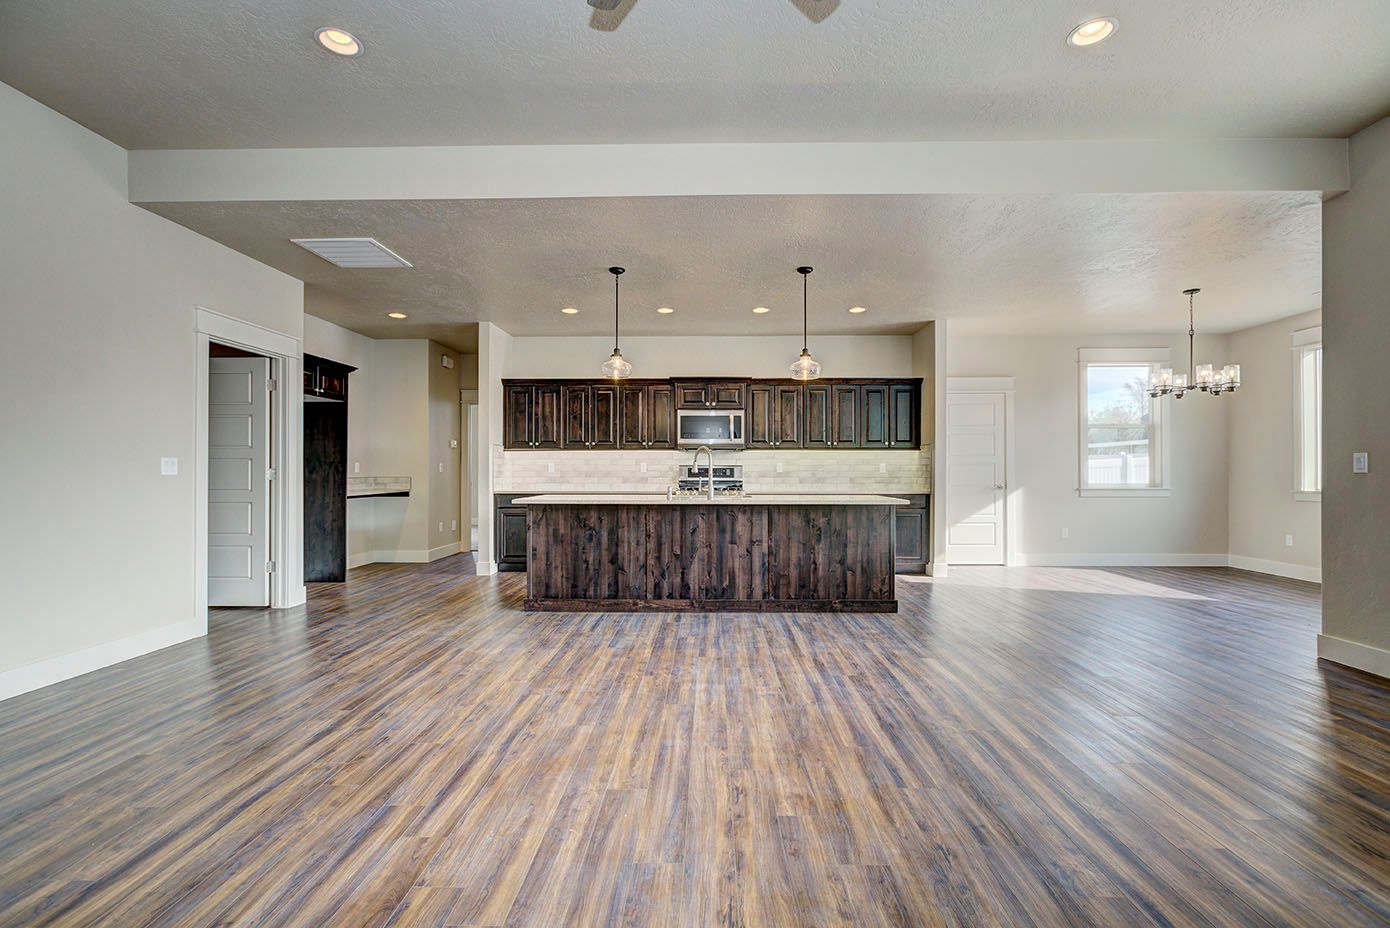 Kitchen featured in the Willows Bungalow By New Beginning Homes in Boise, ID